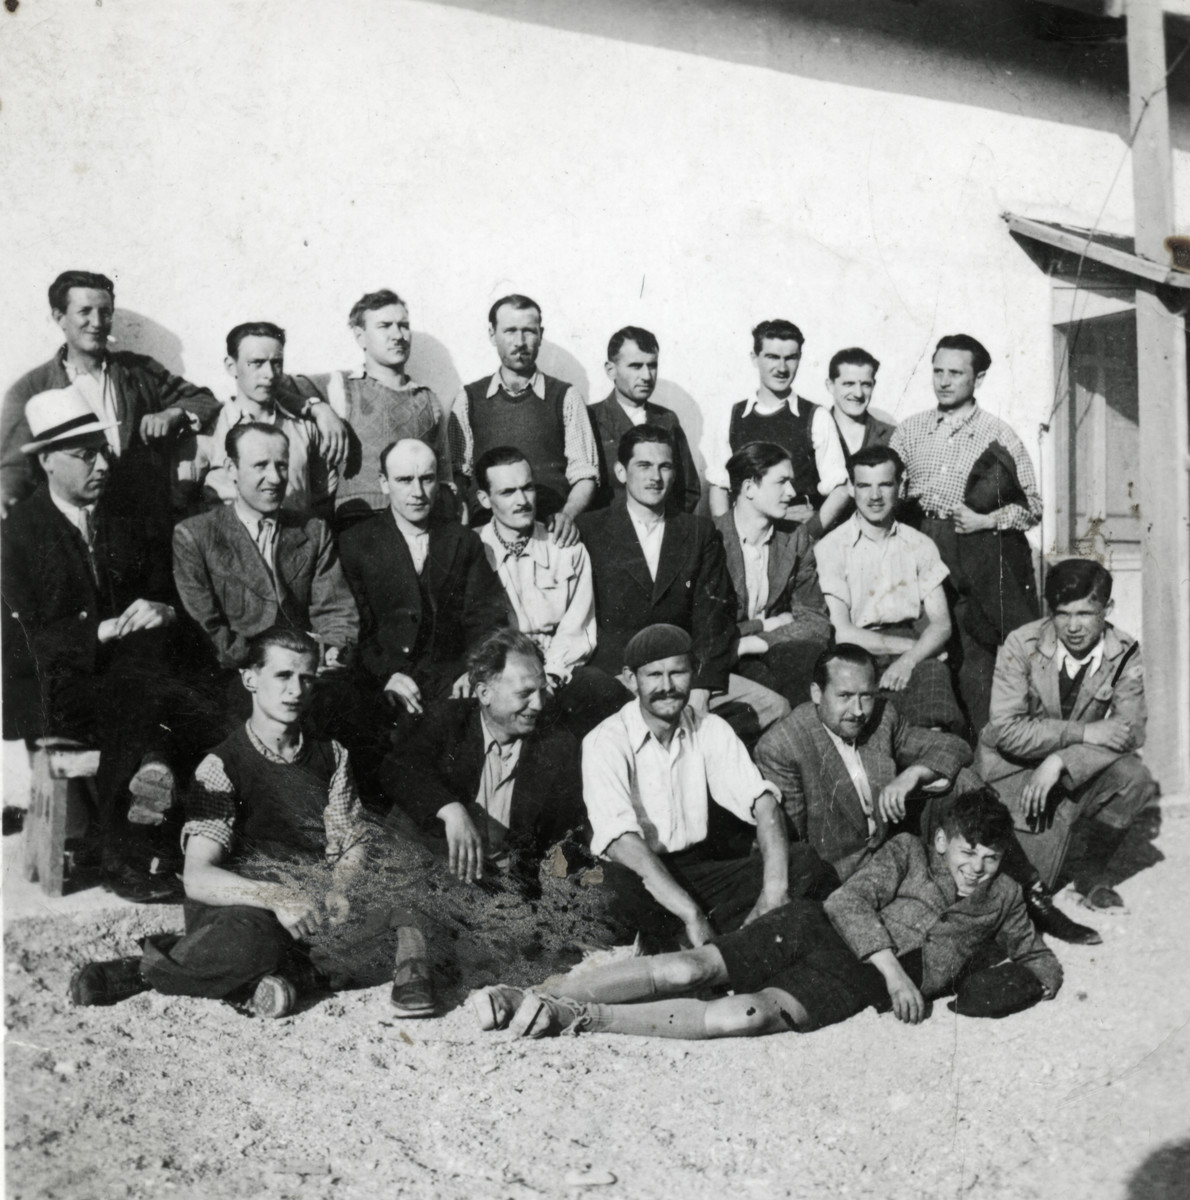 Group portrait of Yugoslav Jewish prisoners in the Ferramonti concentration camp.